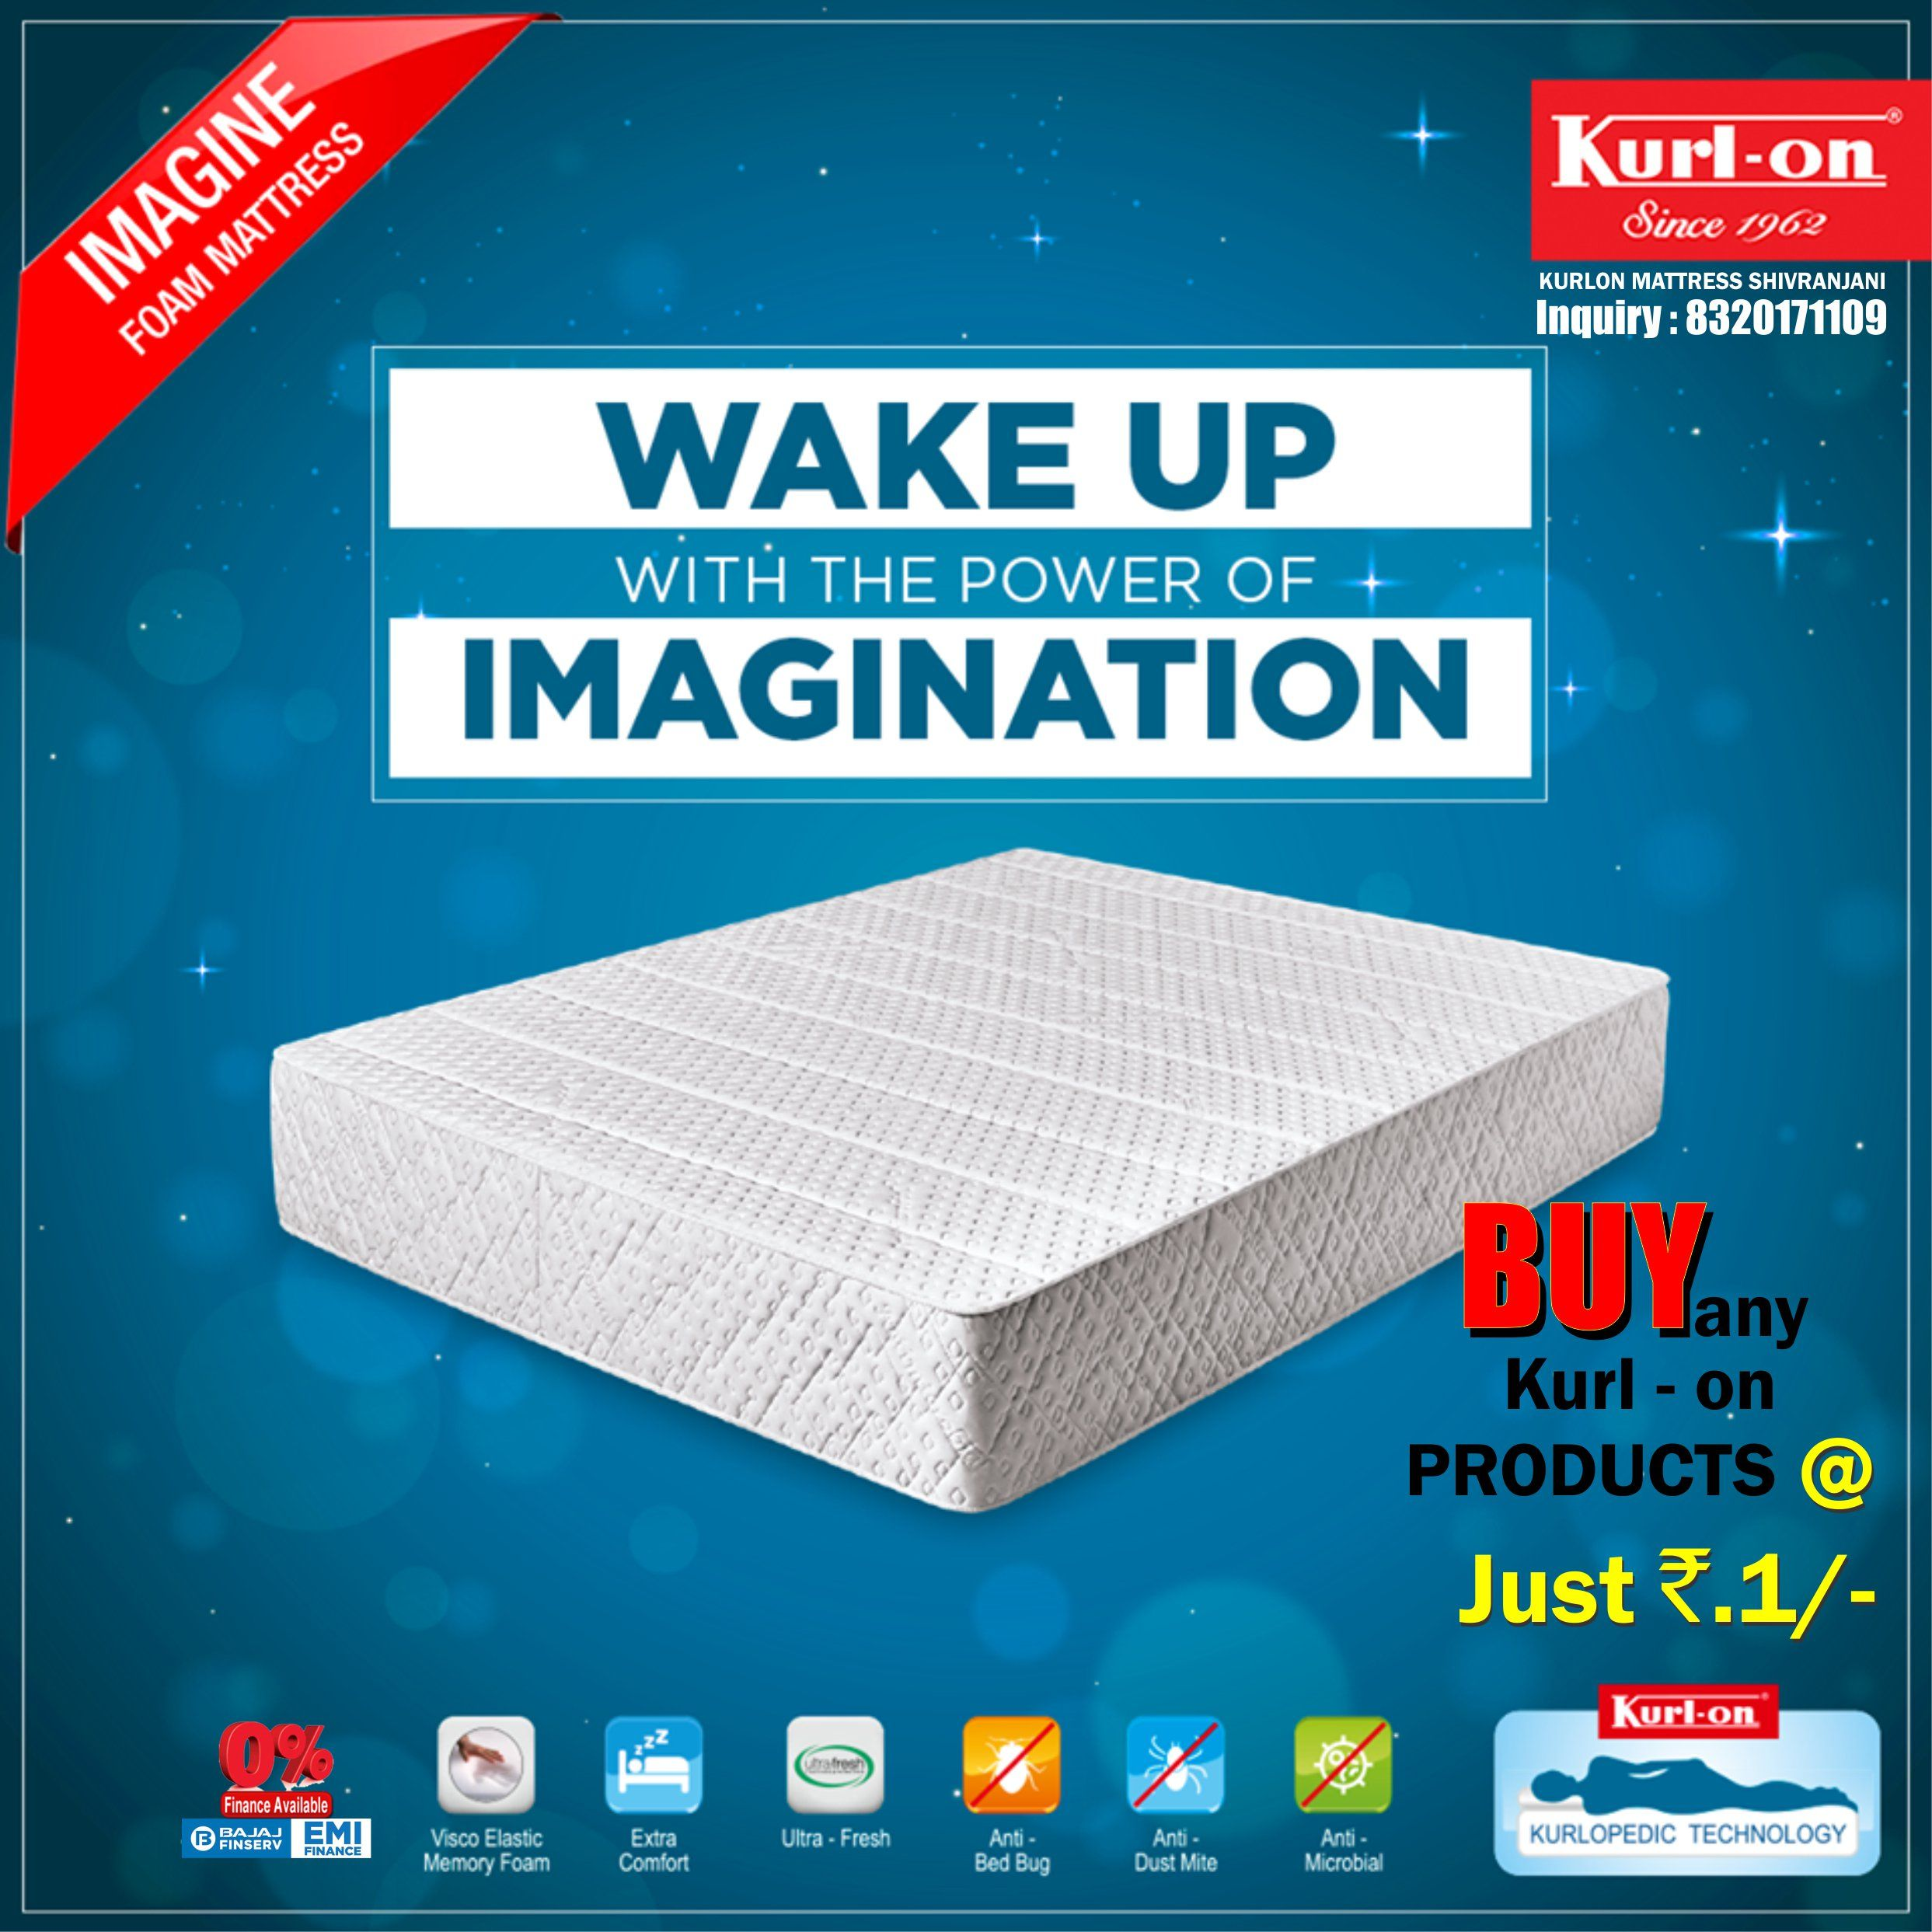 queen set memory king of measurement place headboard mattress wooden and full frames sale buy get where new bedroom adjustable can low with wood single cost frame foam to for size bed near i you shop cheap twin me captains the rails reasons on discount best an black steel high